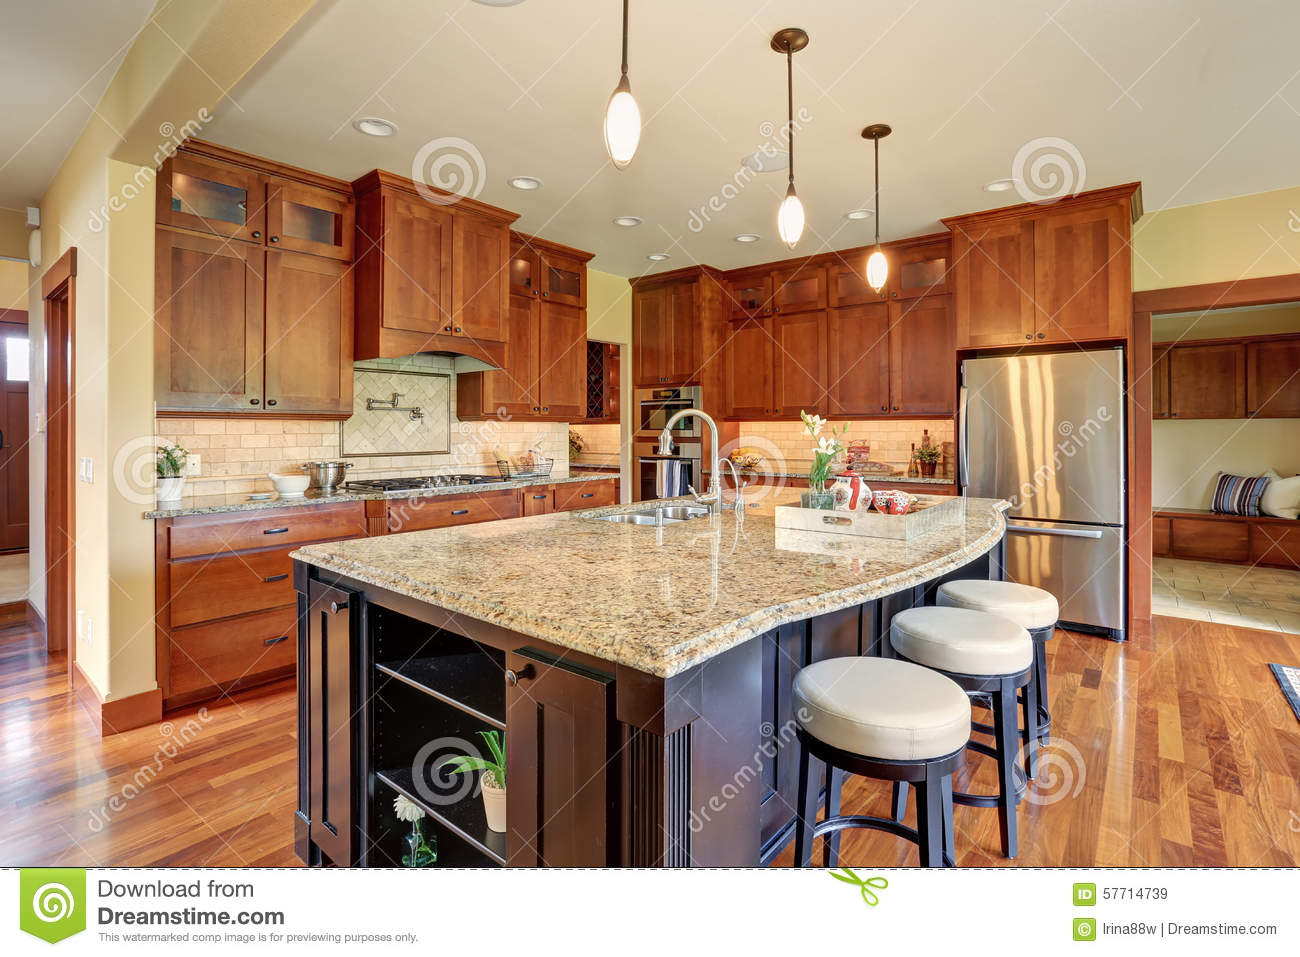 sink kitchen cabinets hope luxury with bar style island. stock image - ...